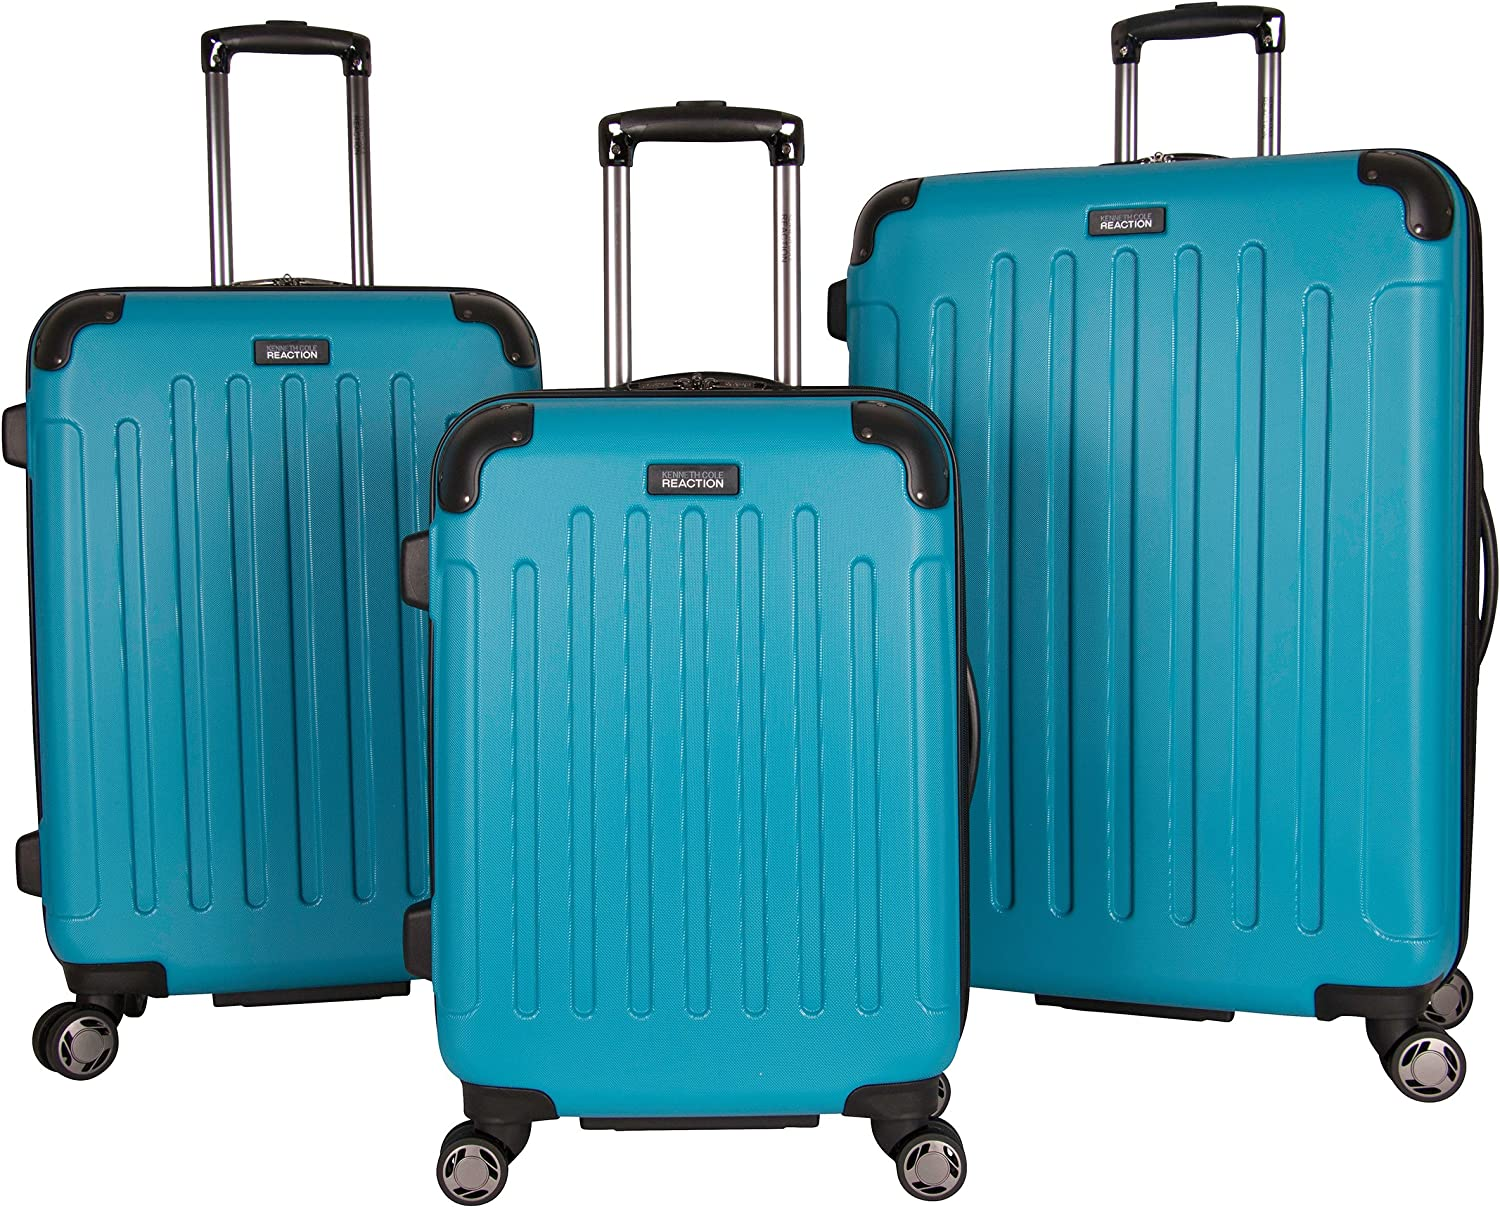 Kenneth Cole REACTION Renegade 28 Lightweight Hardside Expandable 8-Wheel Spinner Checked Luggage Black